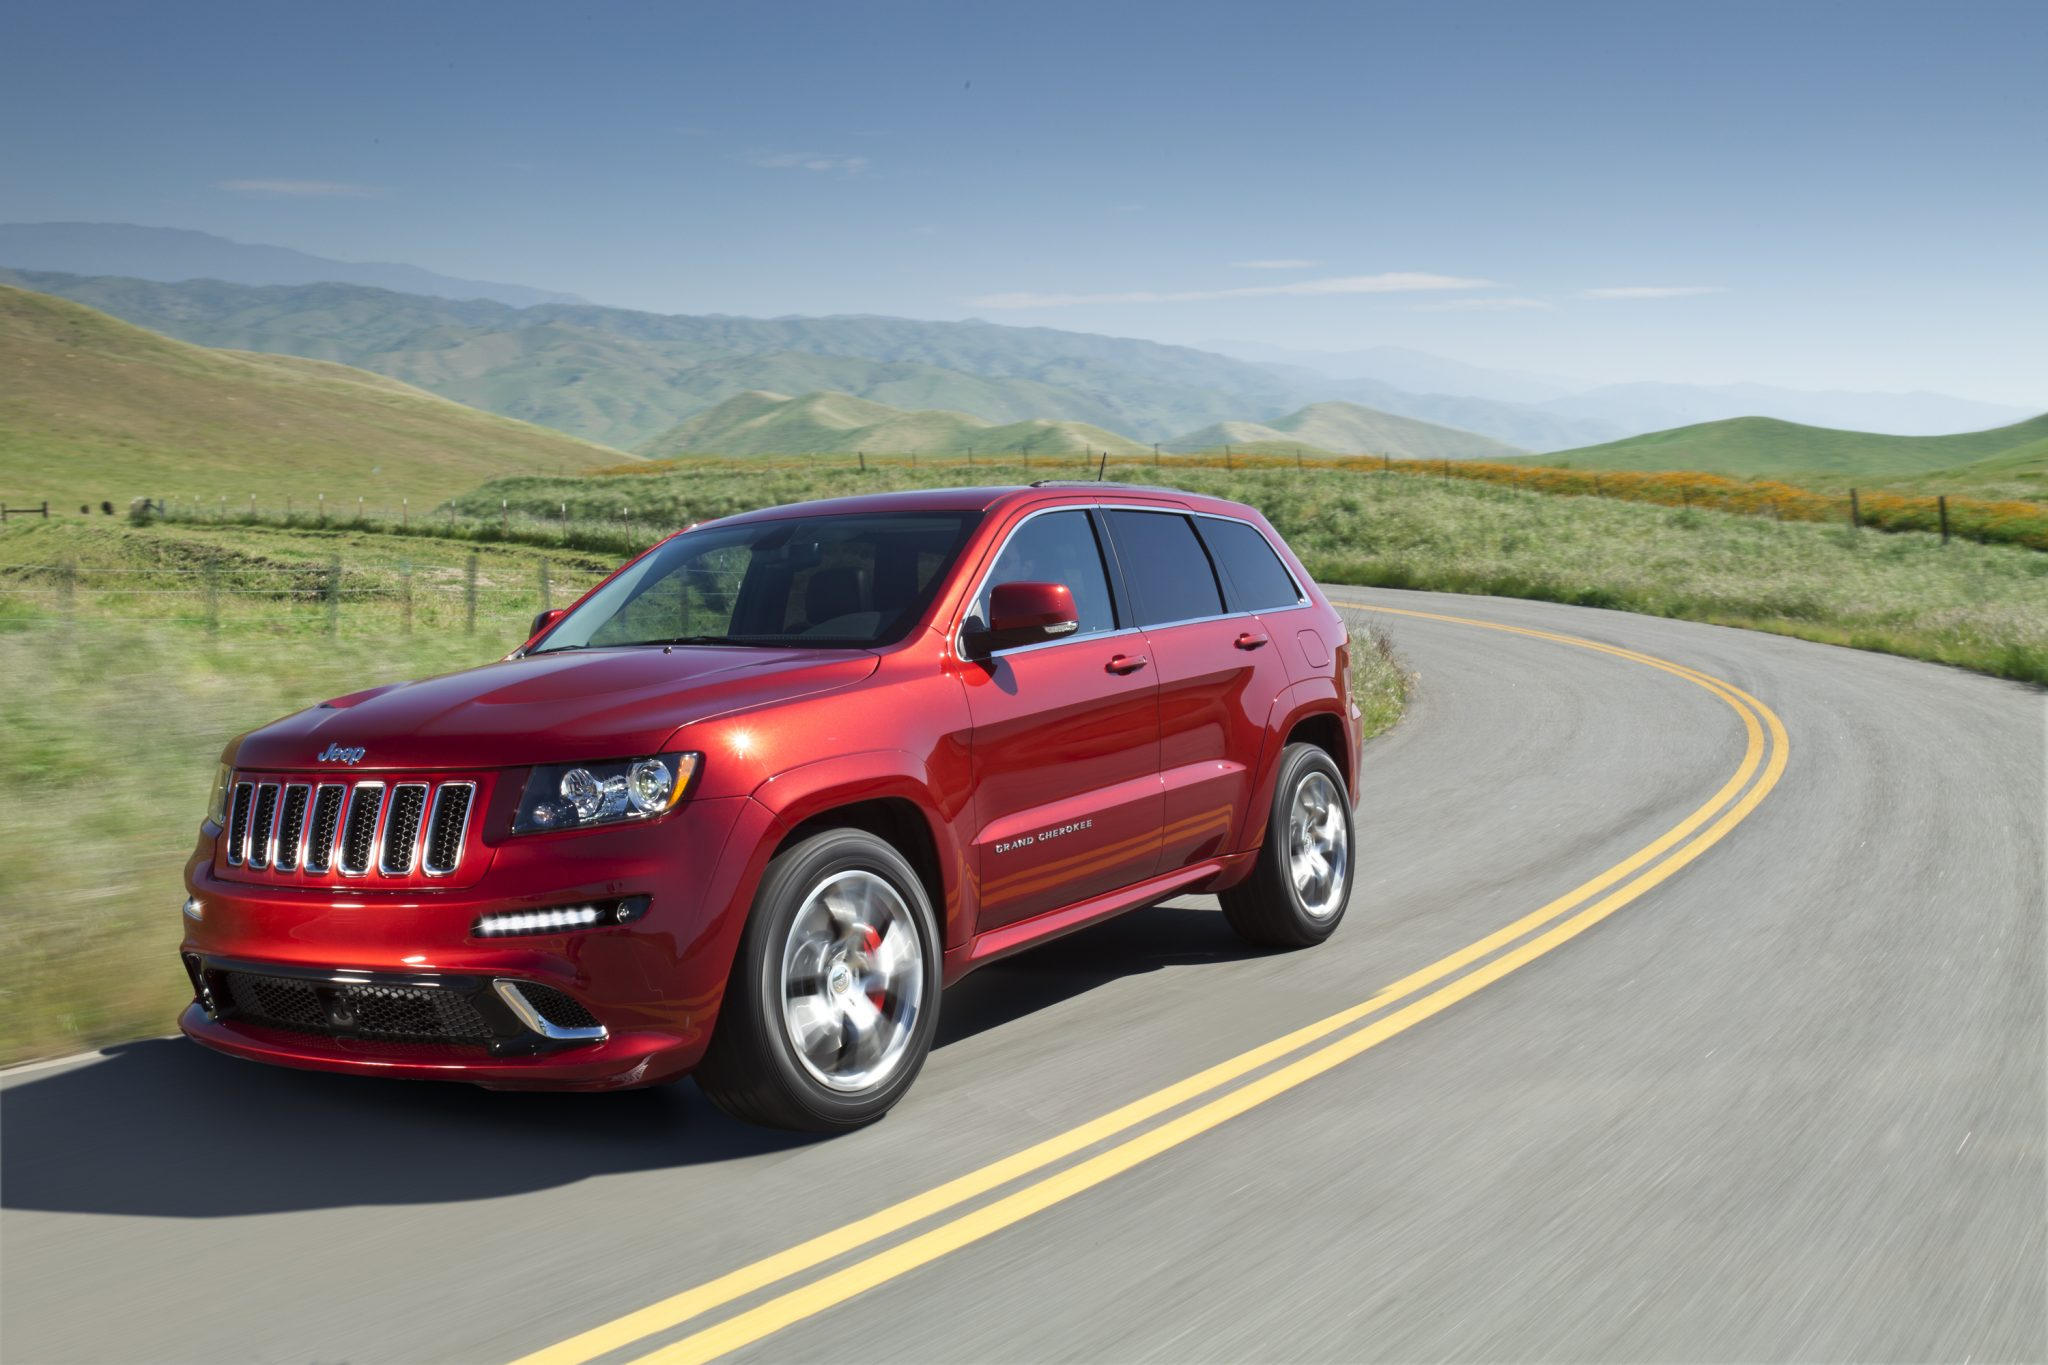 2013 Jeep Grand Cherokee overview